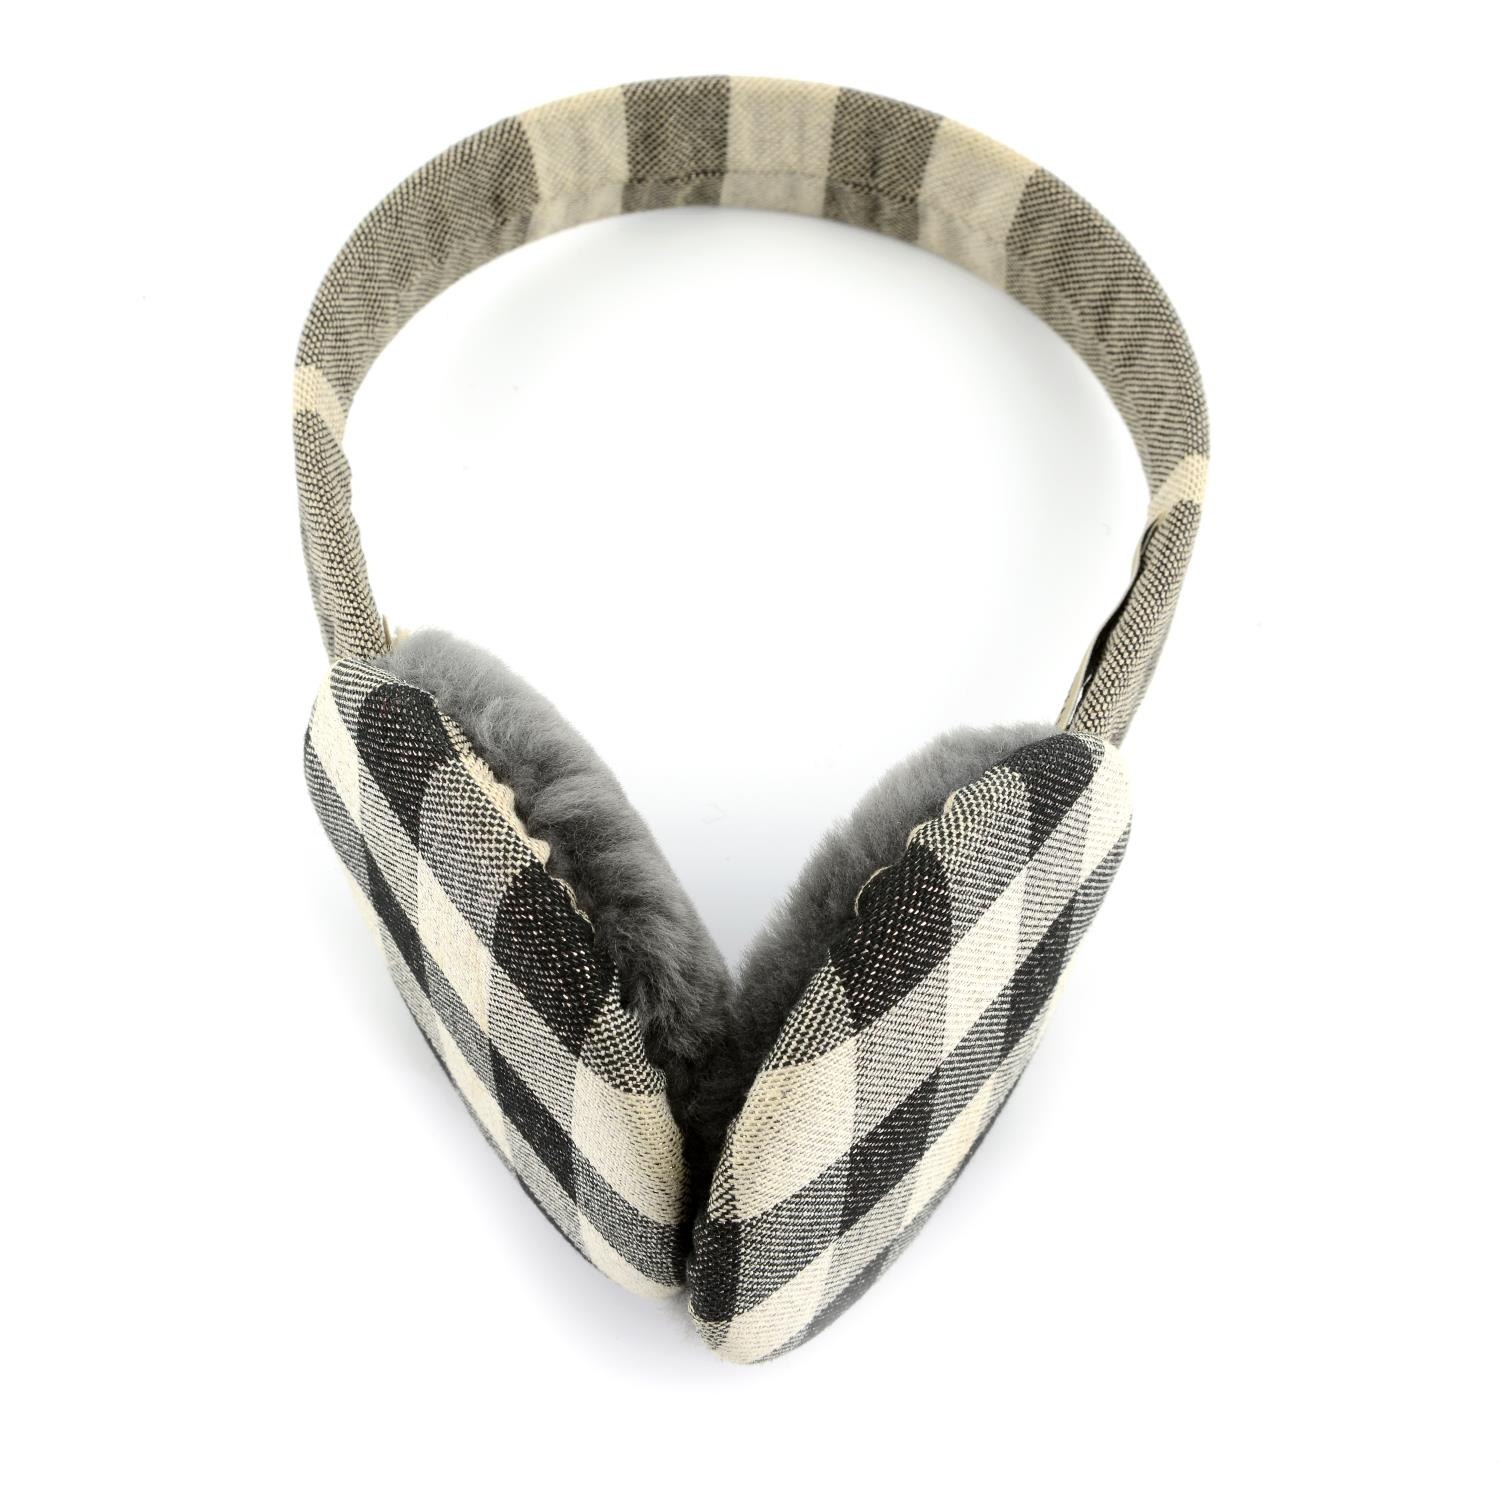 BURBERRY - a pair of ear muffs. - Image 2 of 4